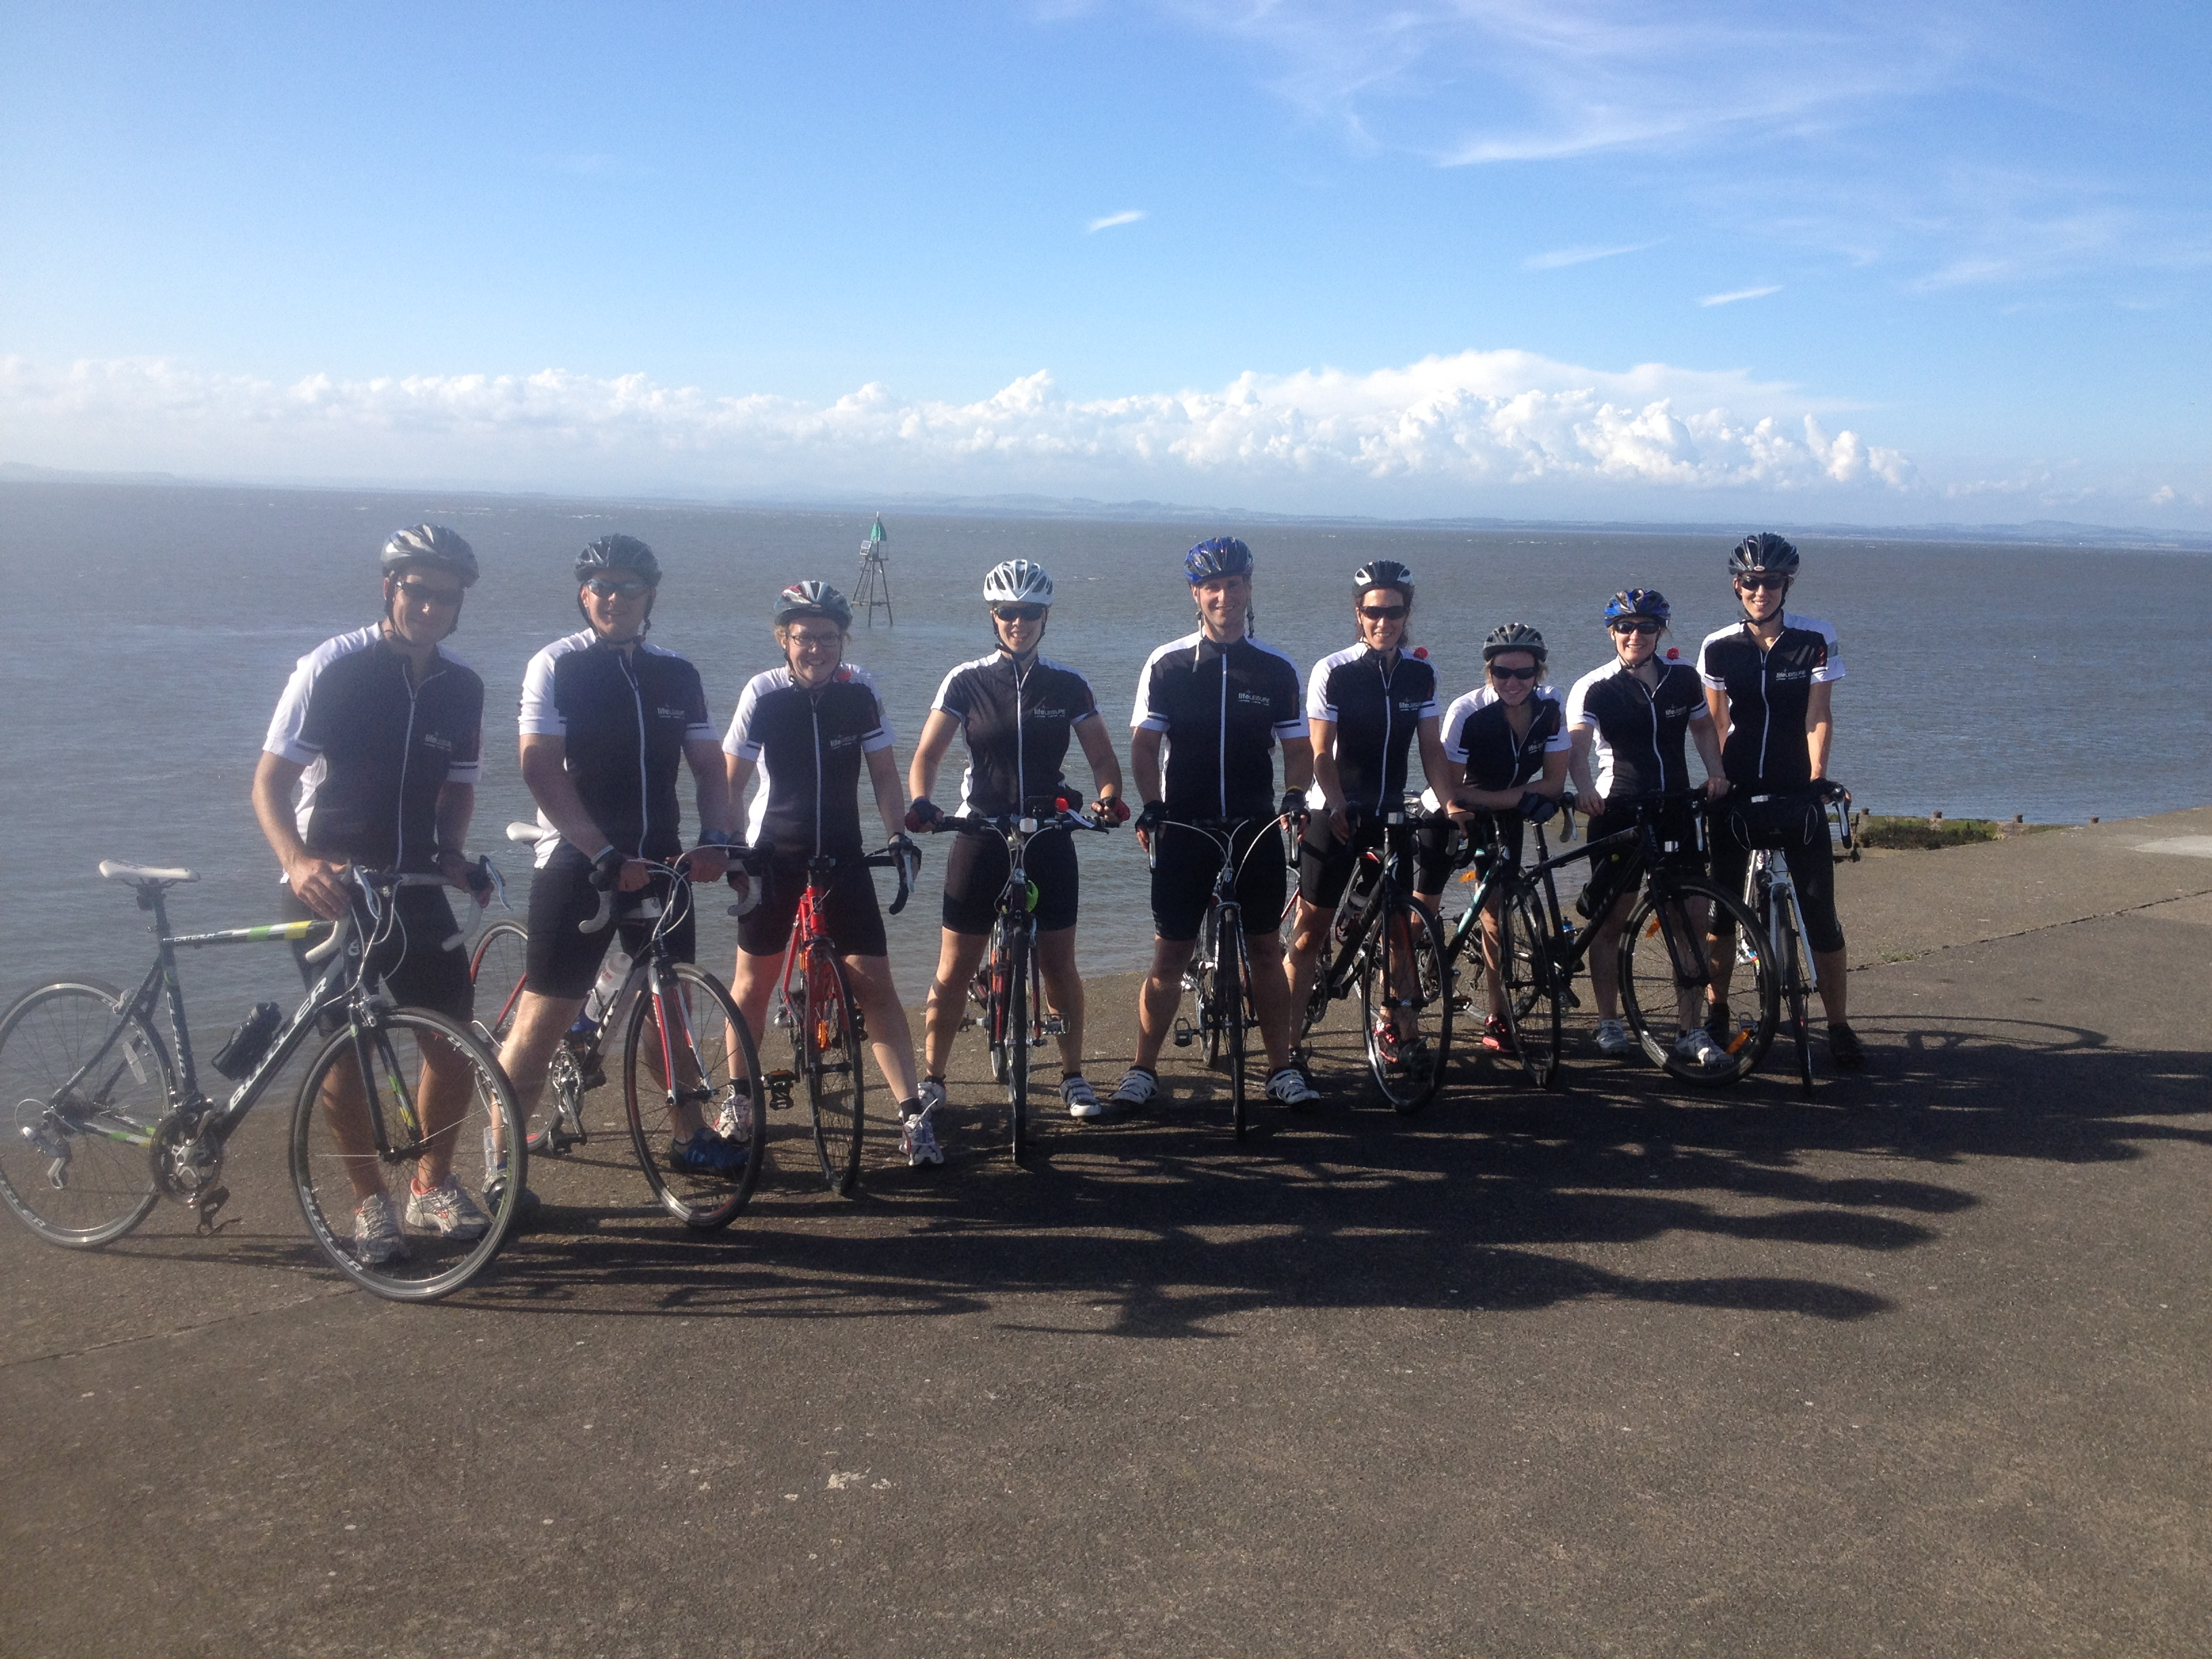 managing your physical resource, charity, cycling, endurance cycling, coast to coast